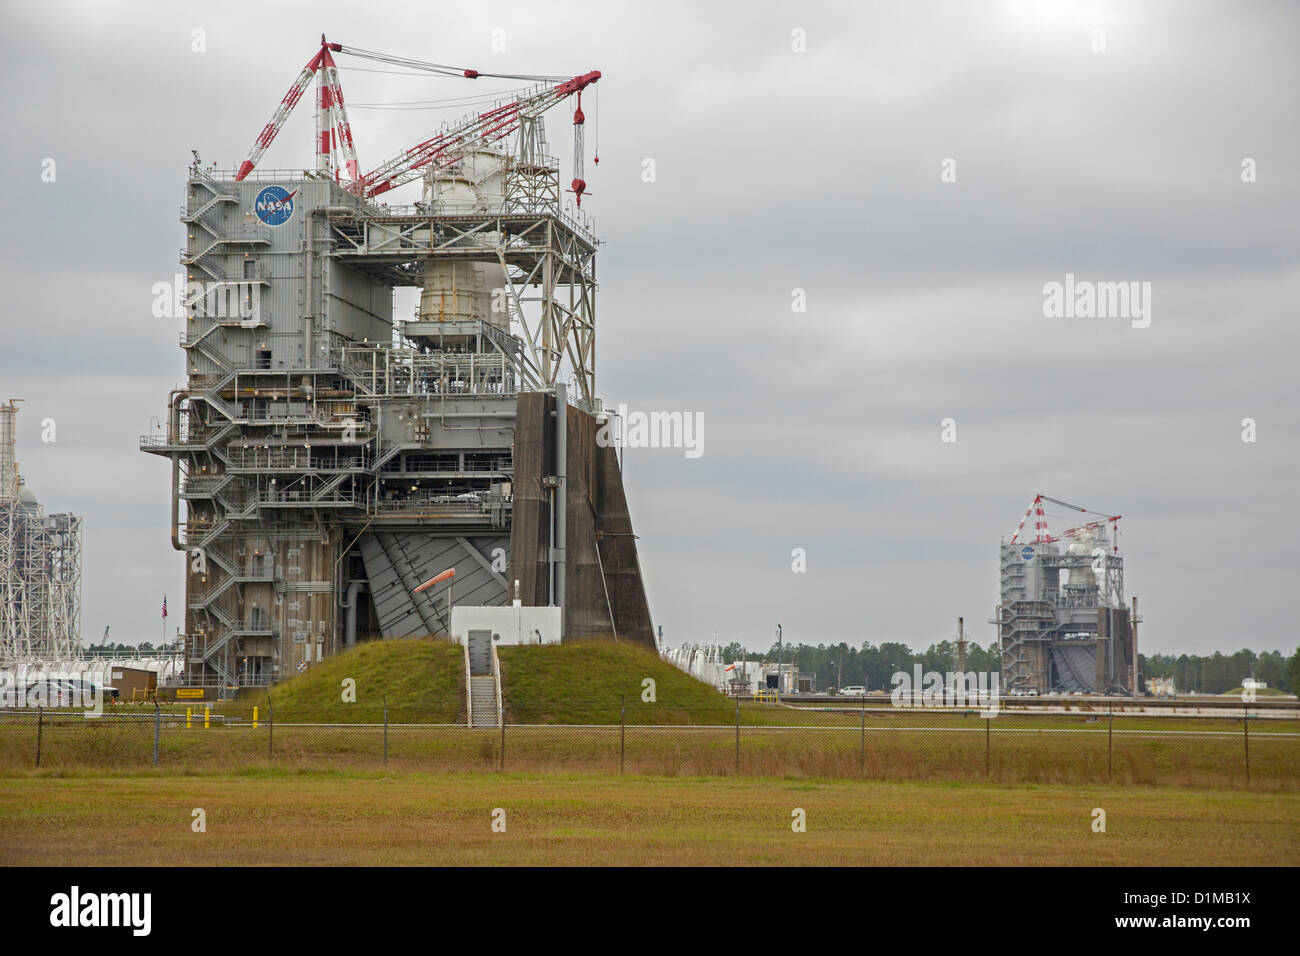 Bay St. Louis, Mississippi - A rocket engine test stand at NASA's Stennis Space Center. - Stock Image